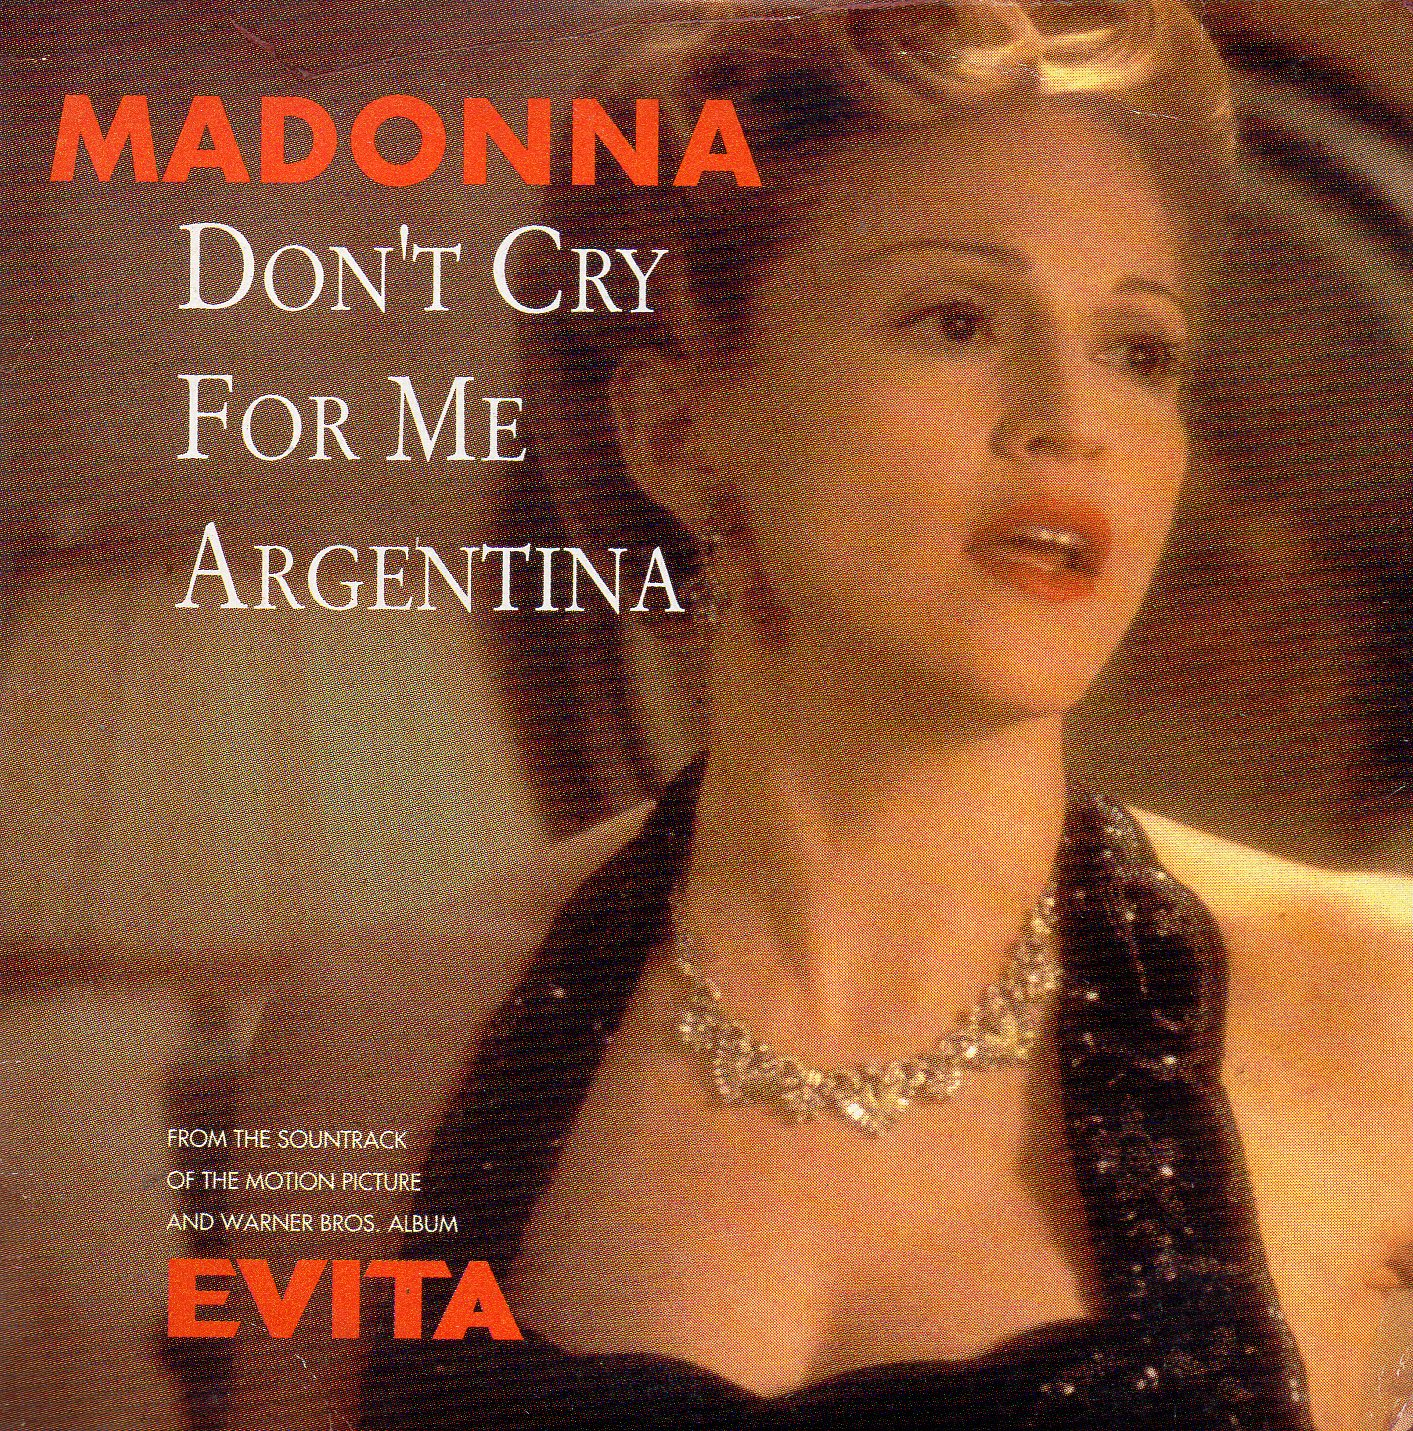 Madonna - Don't Cry For Me Argentina Card Sleeve 4-track